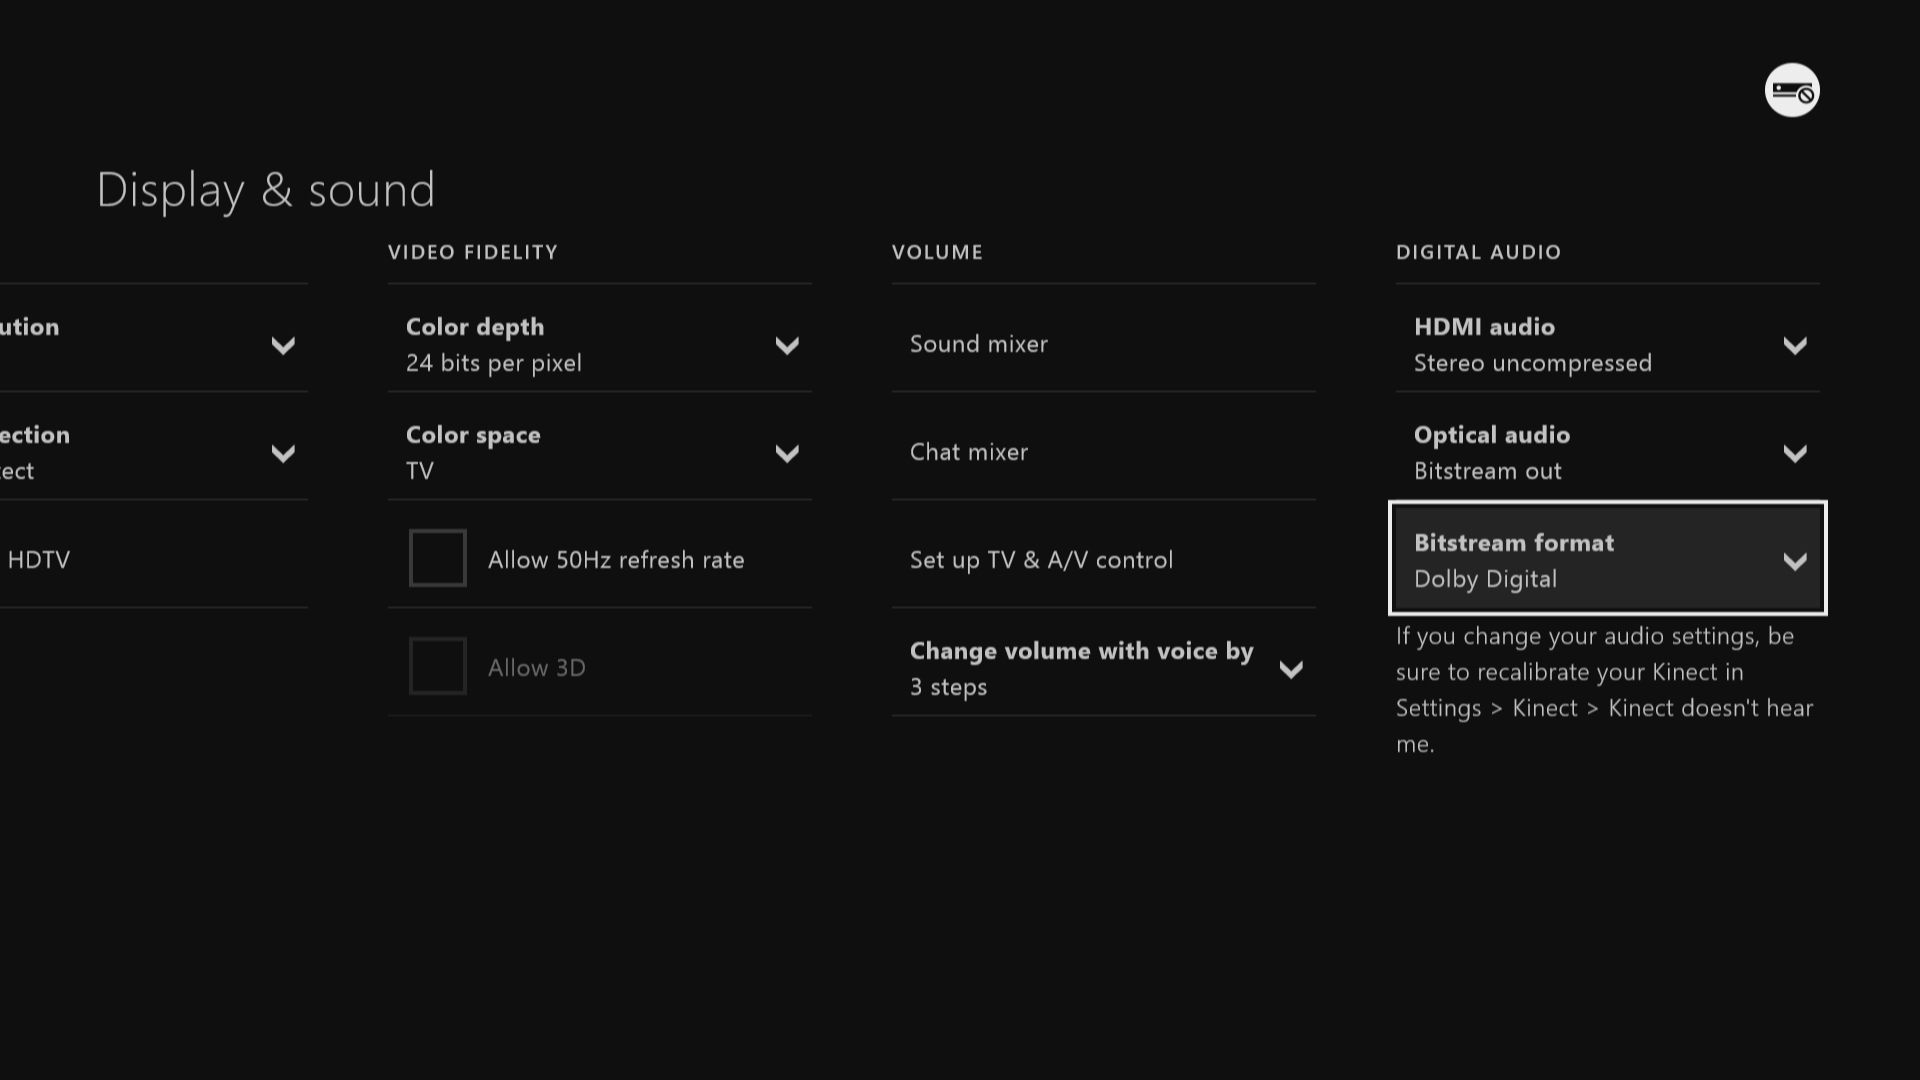 how to connect astro a50 to xbox one x